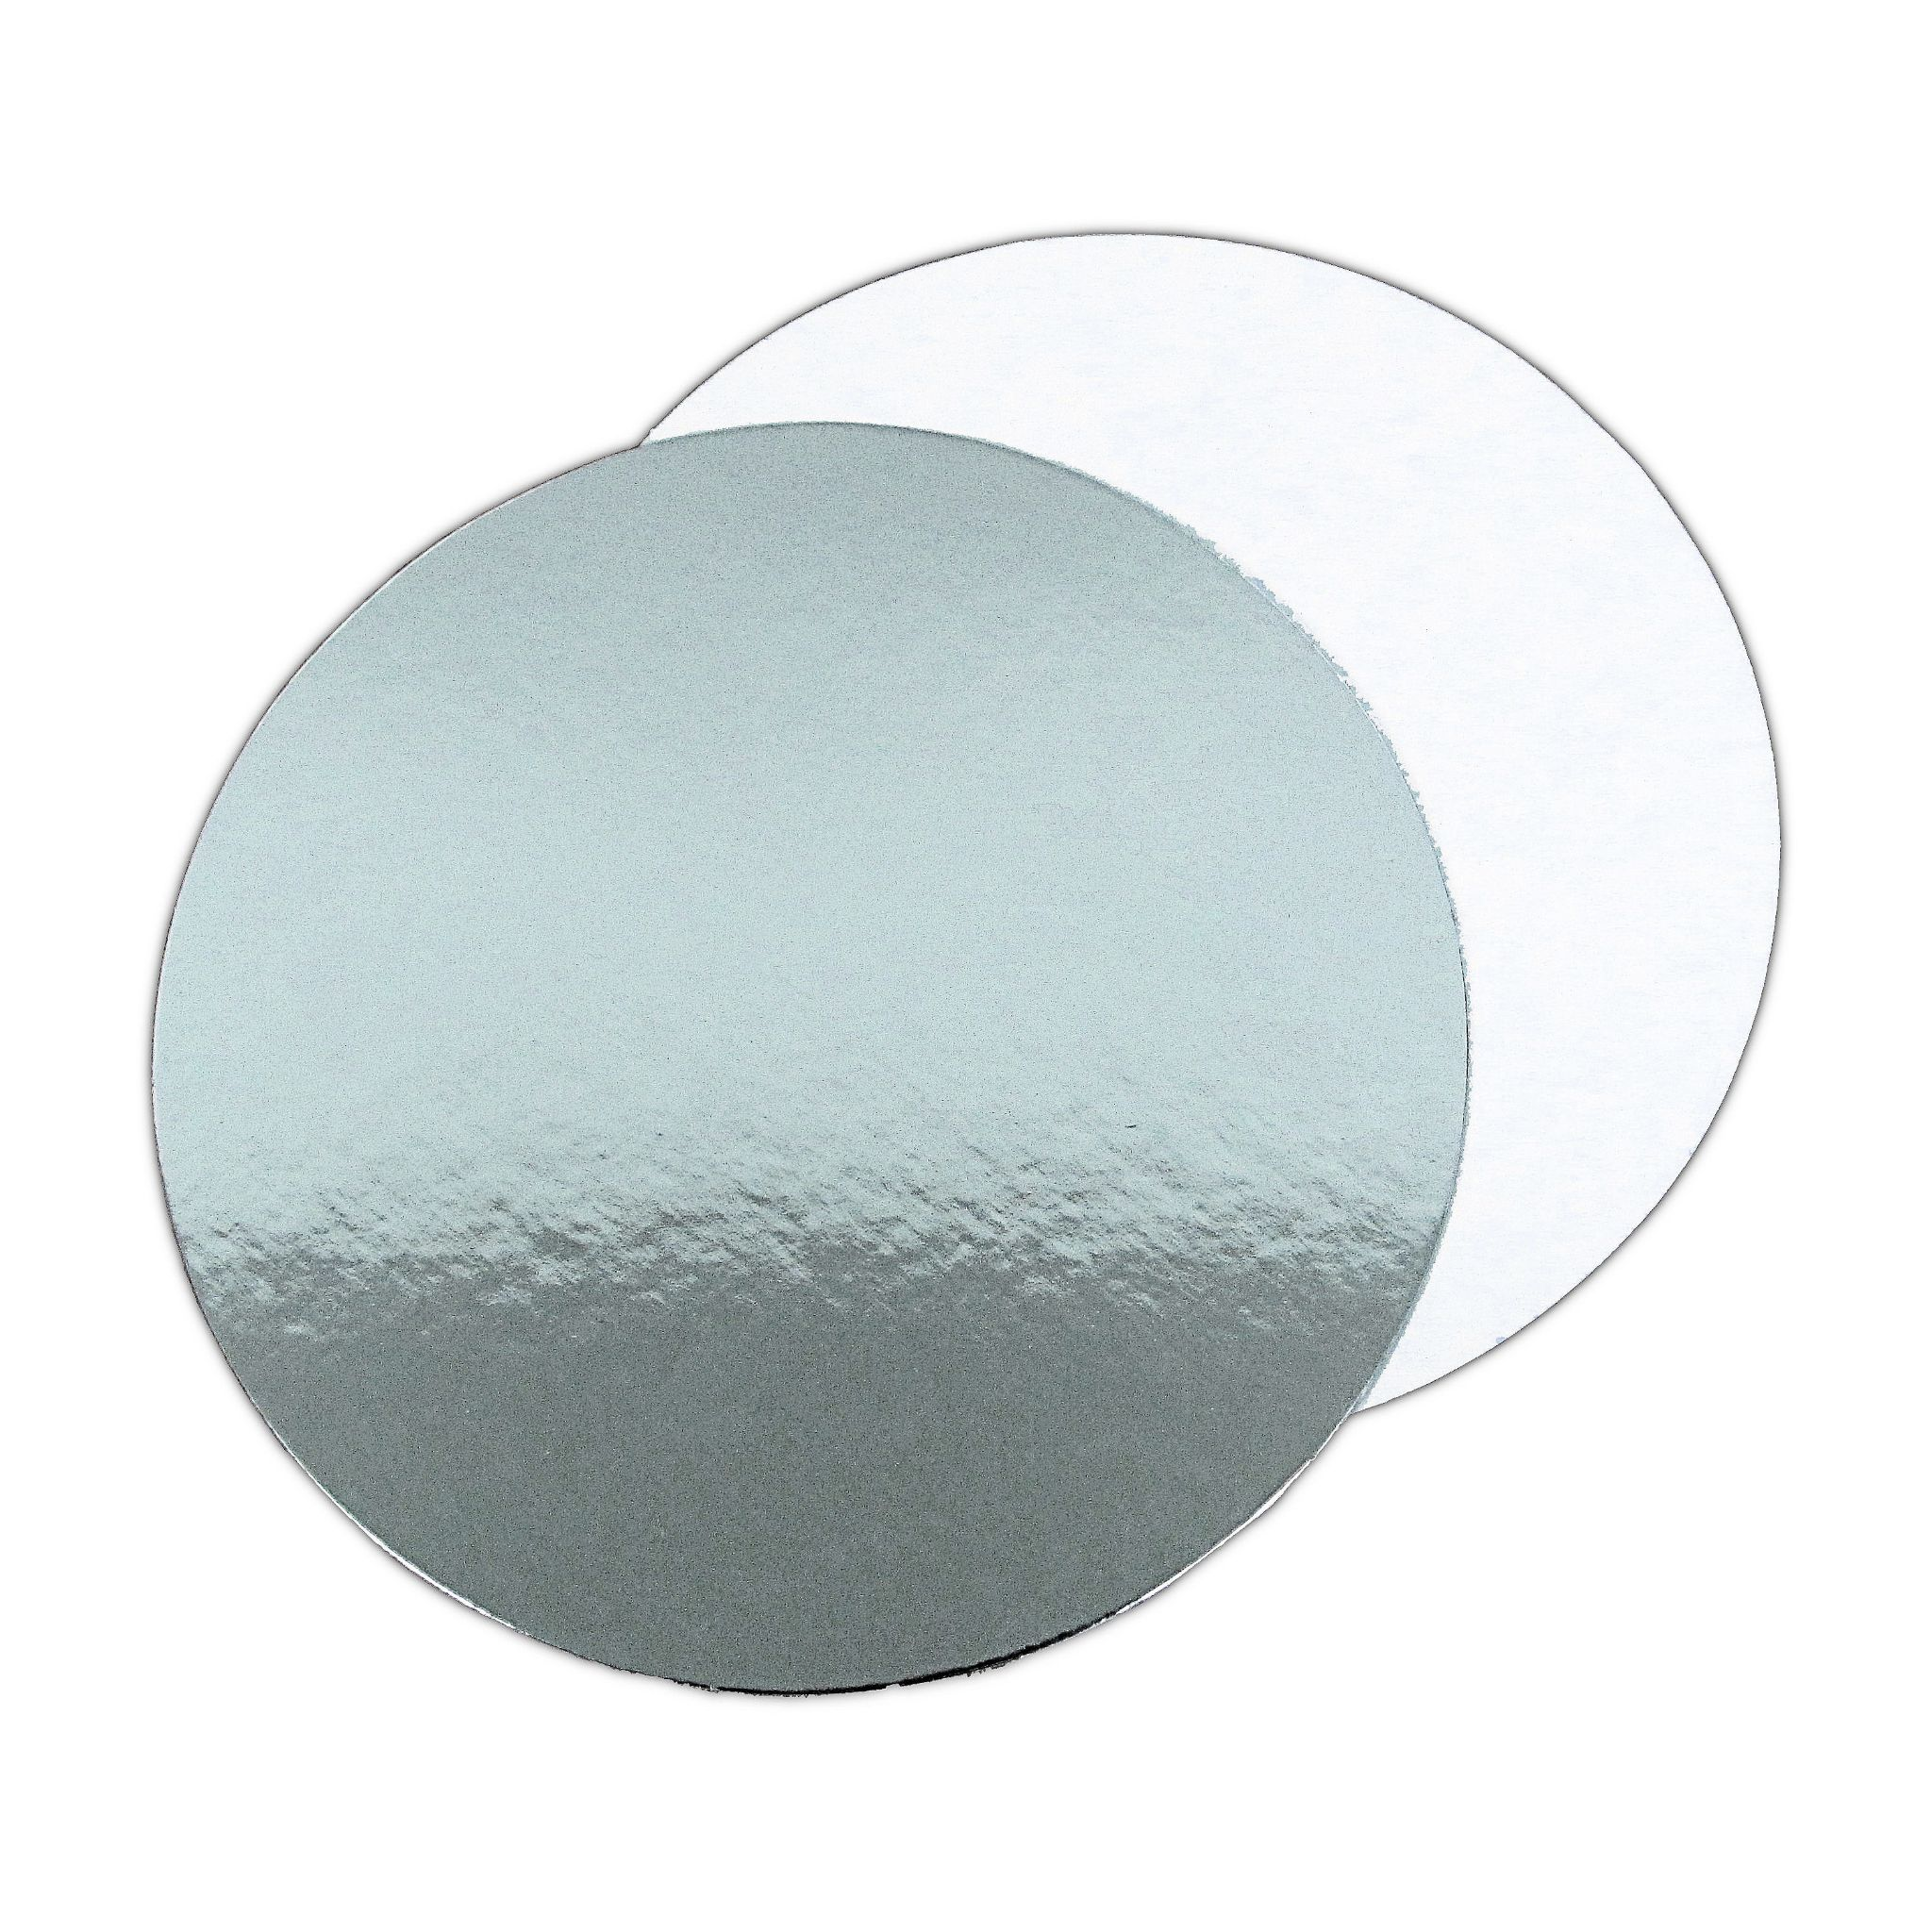 SCC03500 - 3'' Round Silver/White Cut Edge Cake Cards x 500